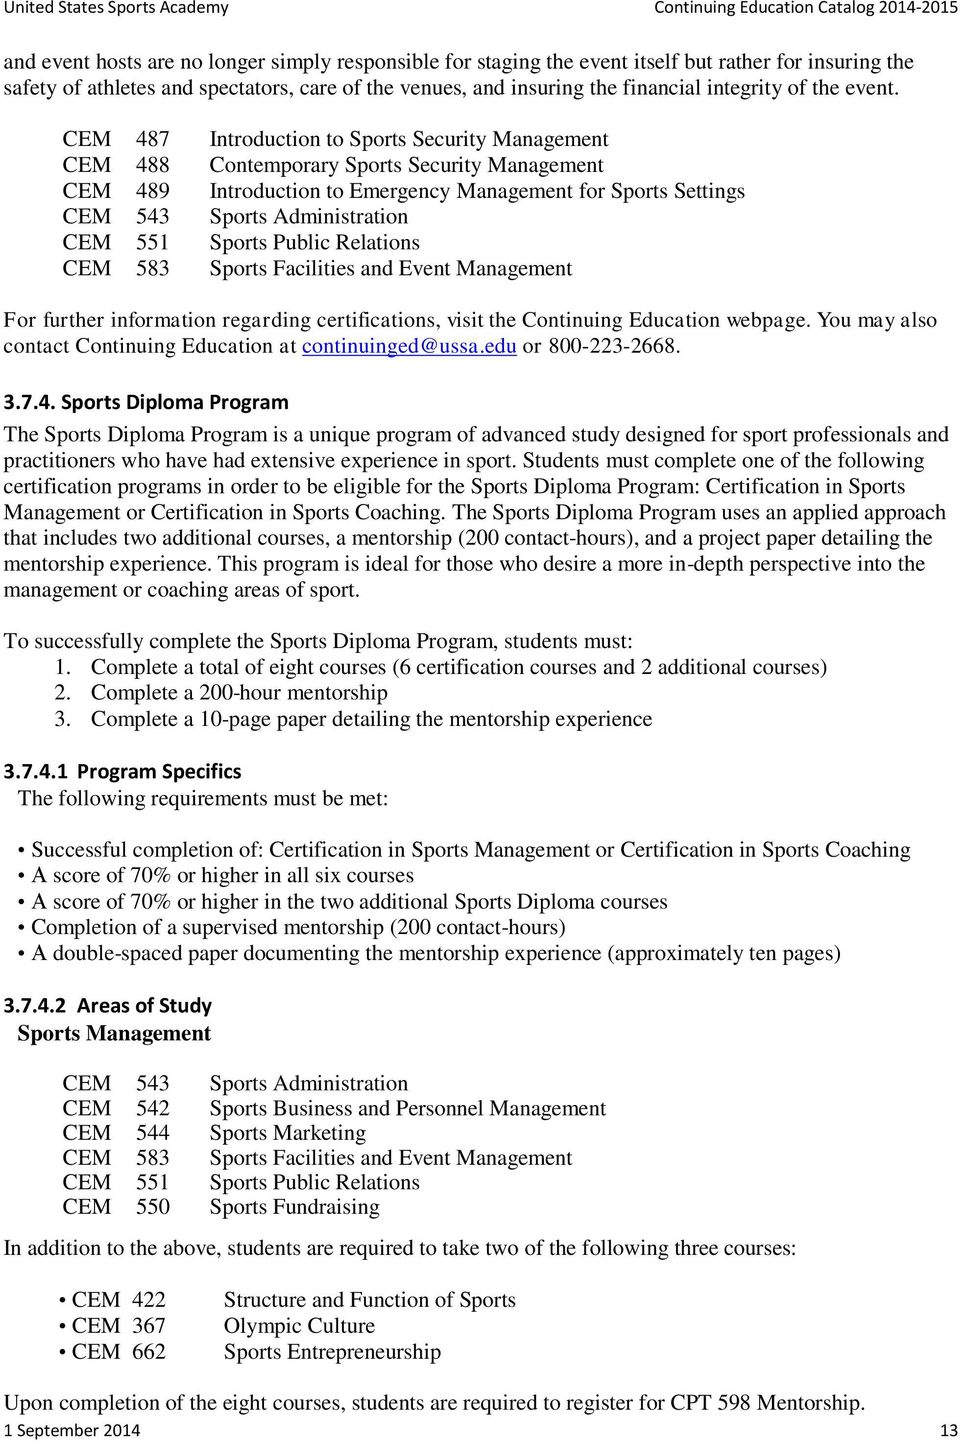 CEM 487 Introduction to Sports Security Management CEM 488 Contemporary Sports Security Management CEM 489 Introduction to Emergency Management for Sports Settings CEM 543 Sports Administration CEM